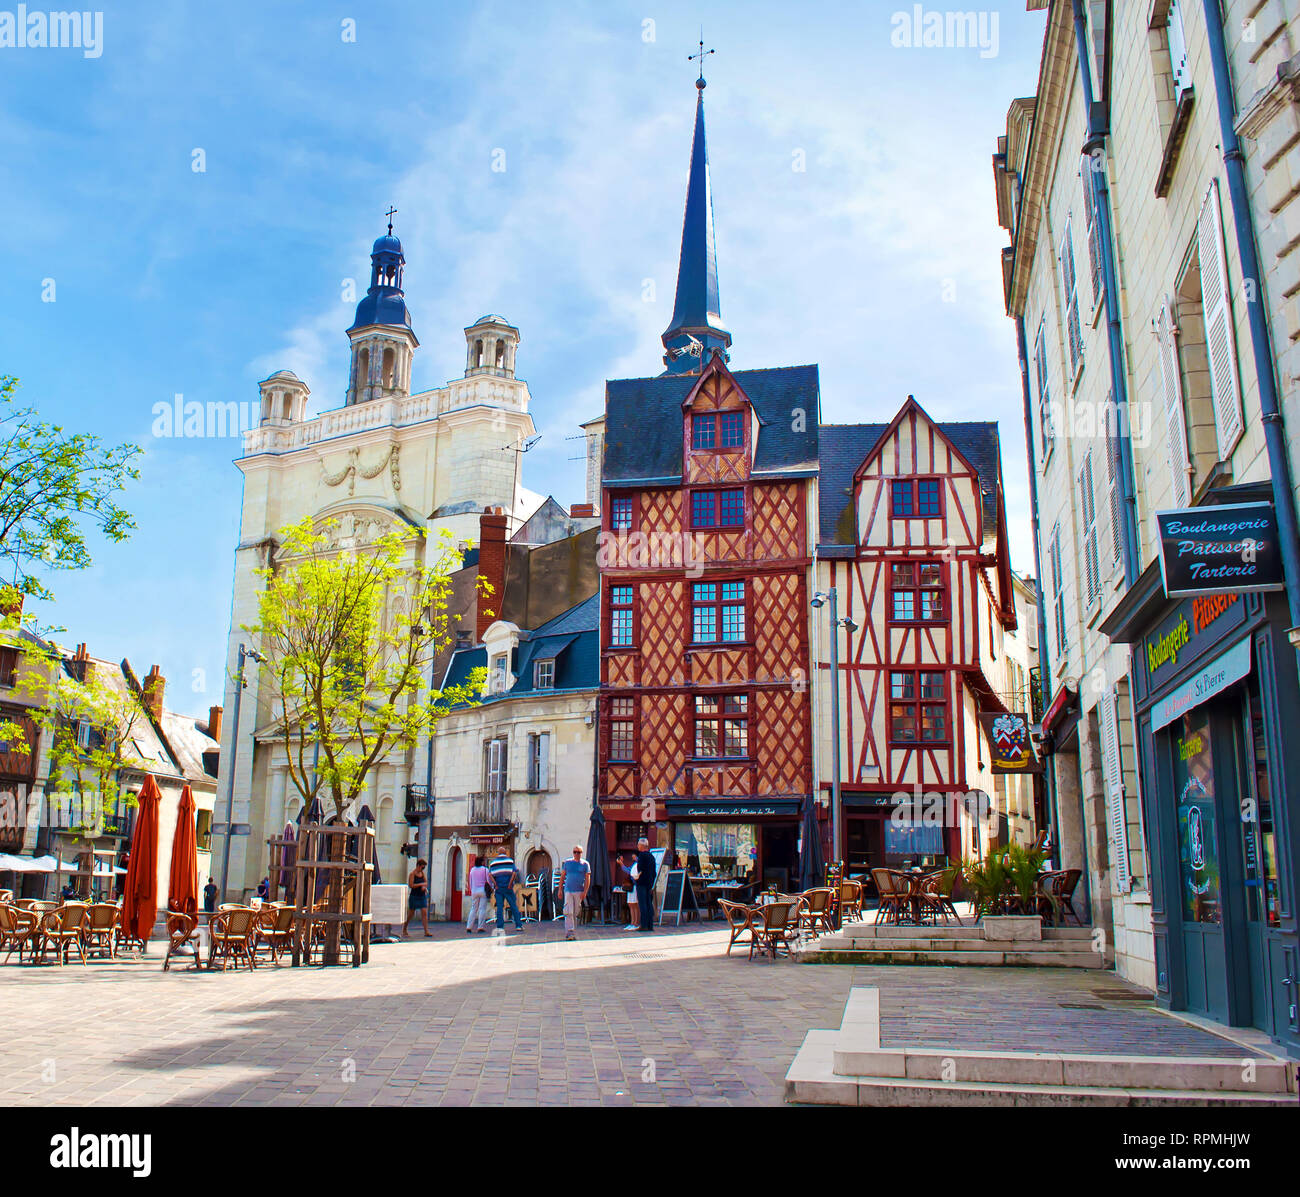 Saumur, France - April 22, 2018: Eglise St Pierre square in solitary city center of a small town Saumur, orange beam houses near a square on a warm sp - Stock Image